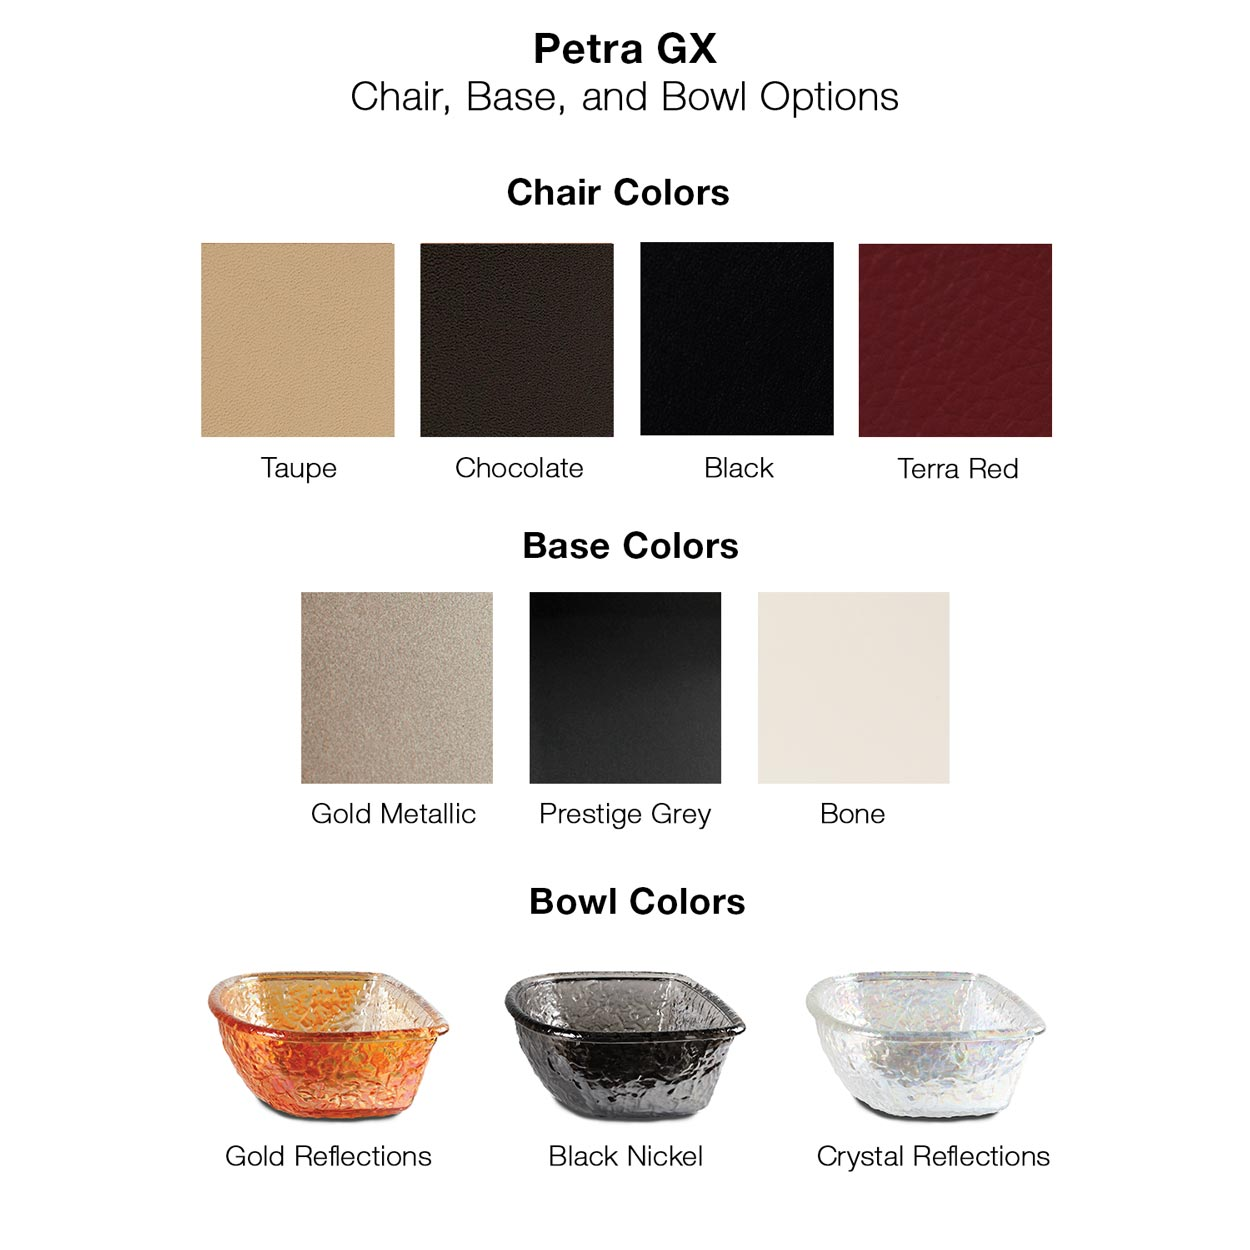 Petra LX Pedicure Spa Chair alternative product image 3